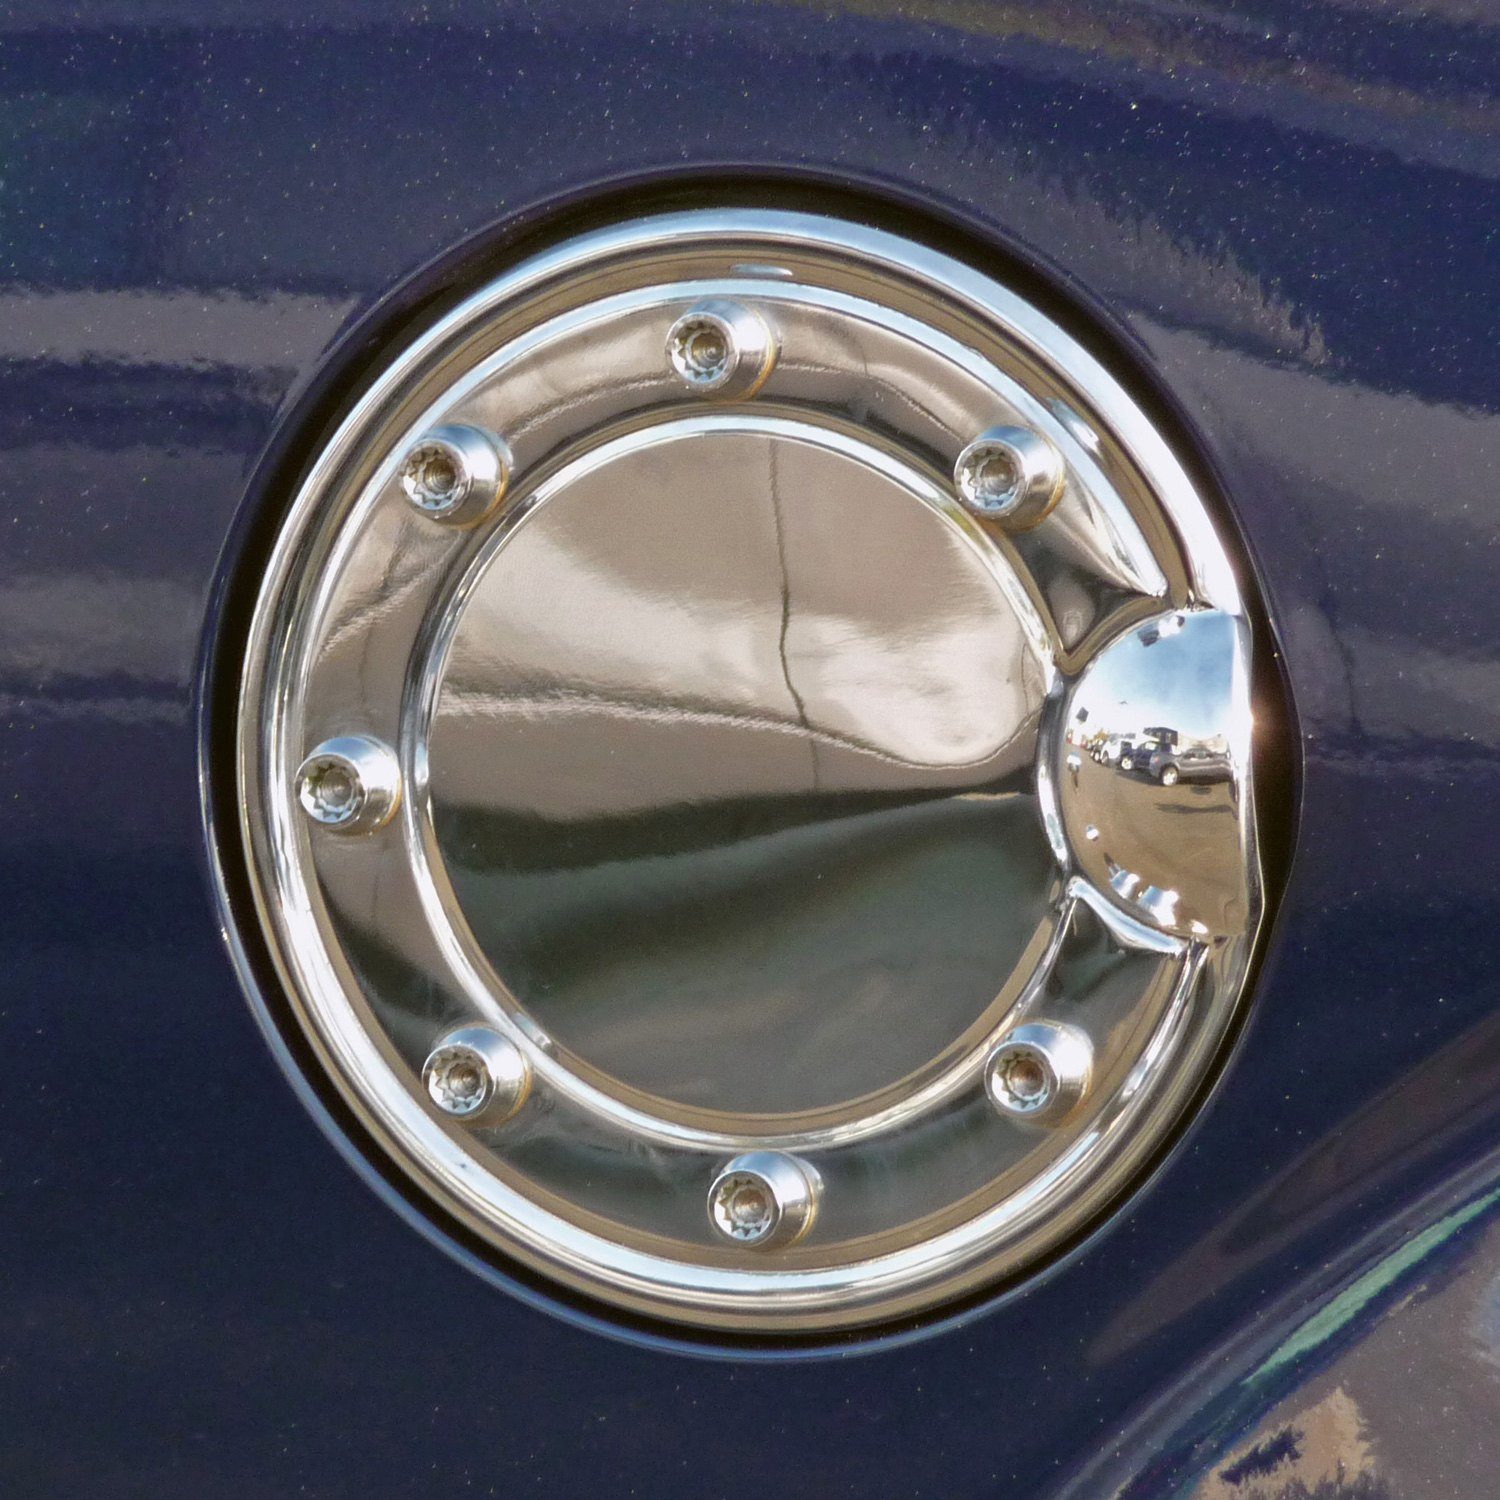 Tfp b chrome stainless steel gas cap cover